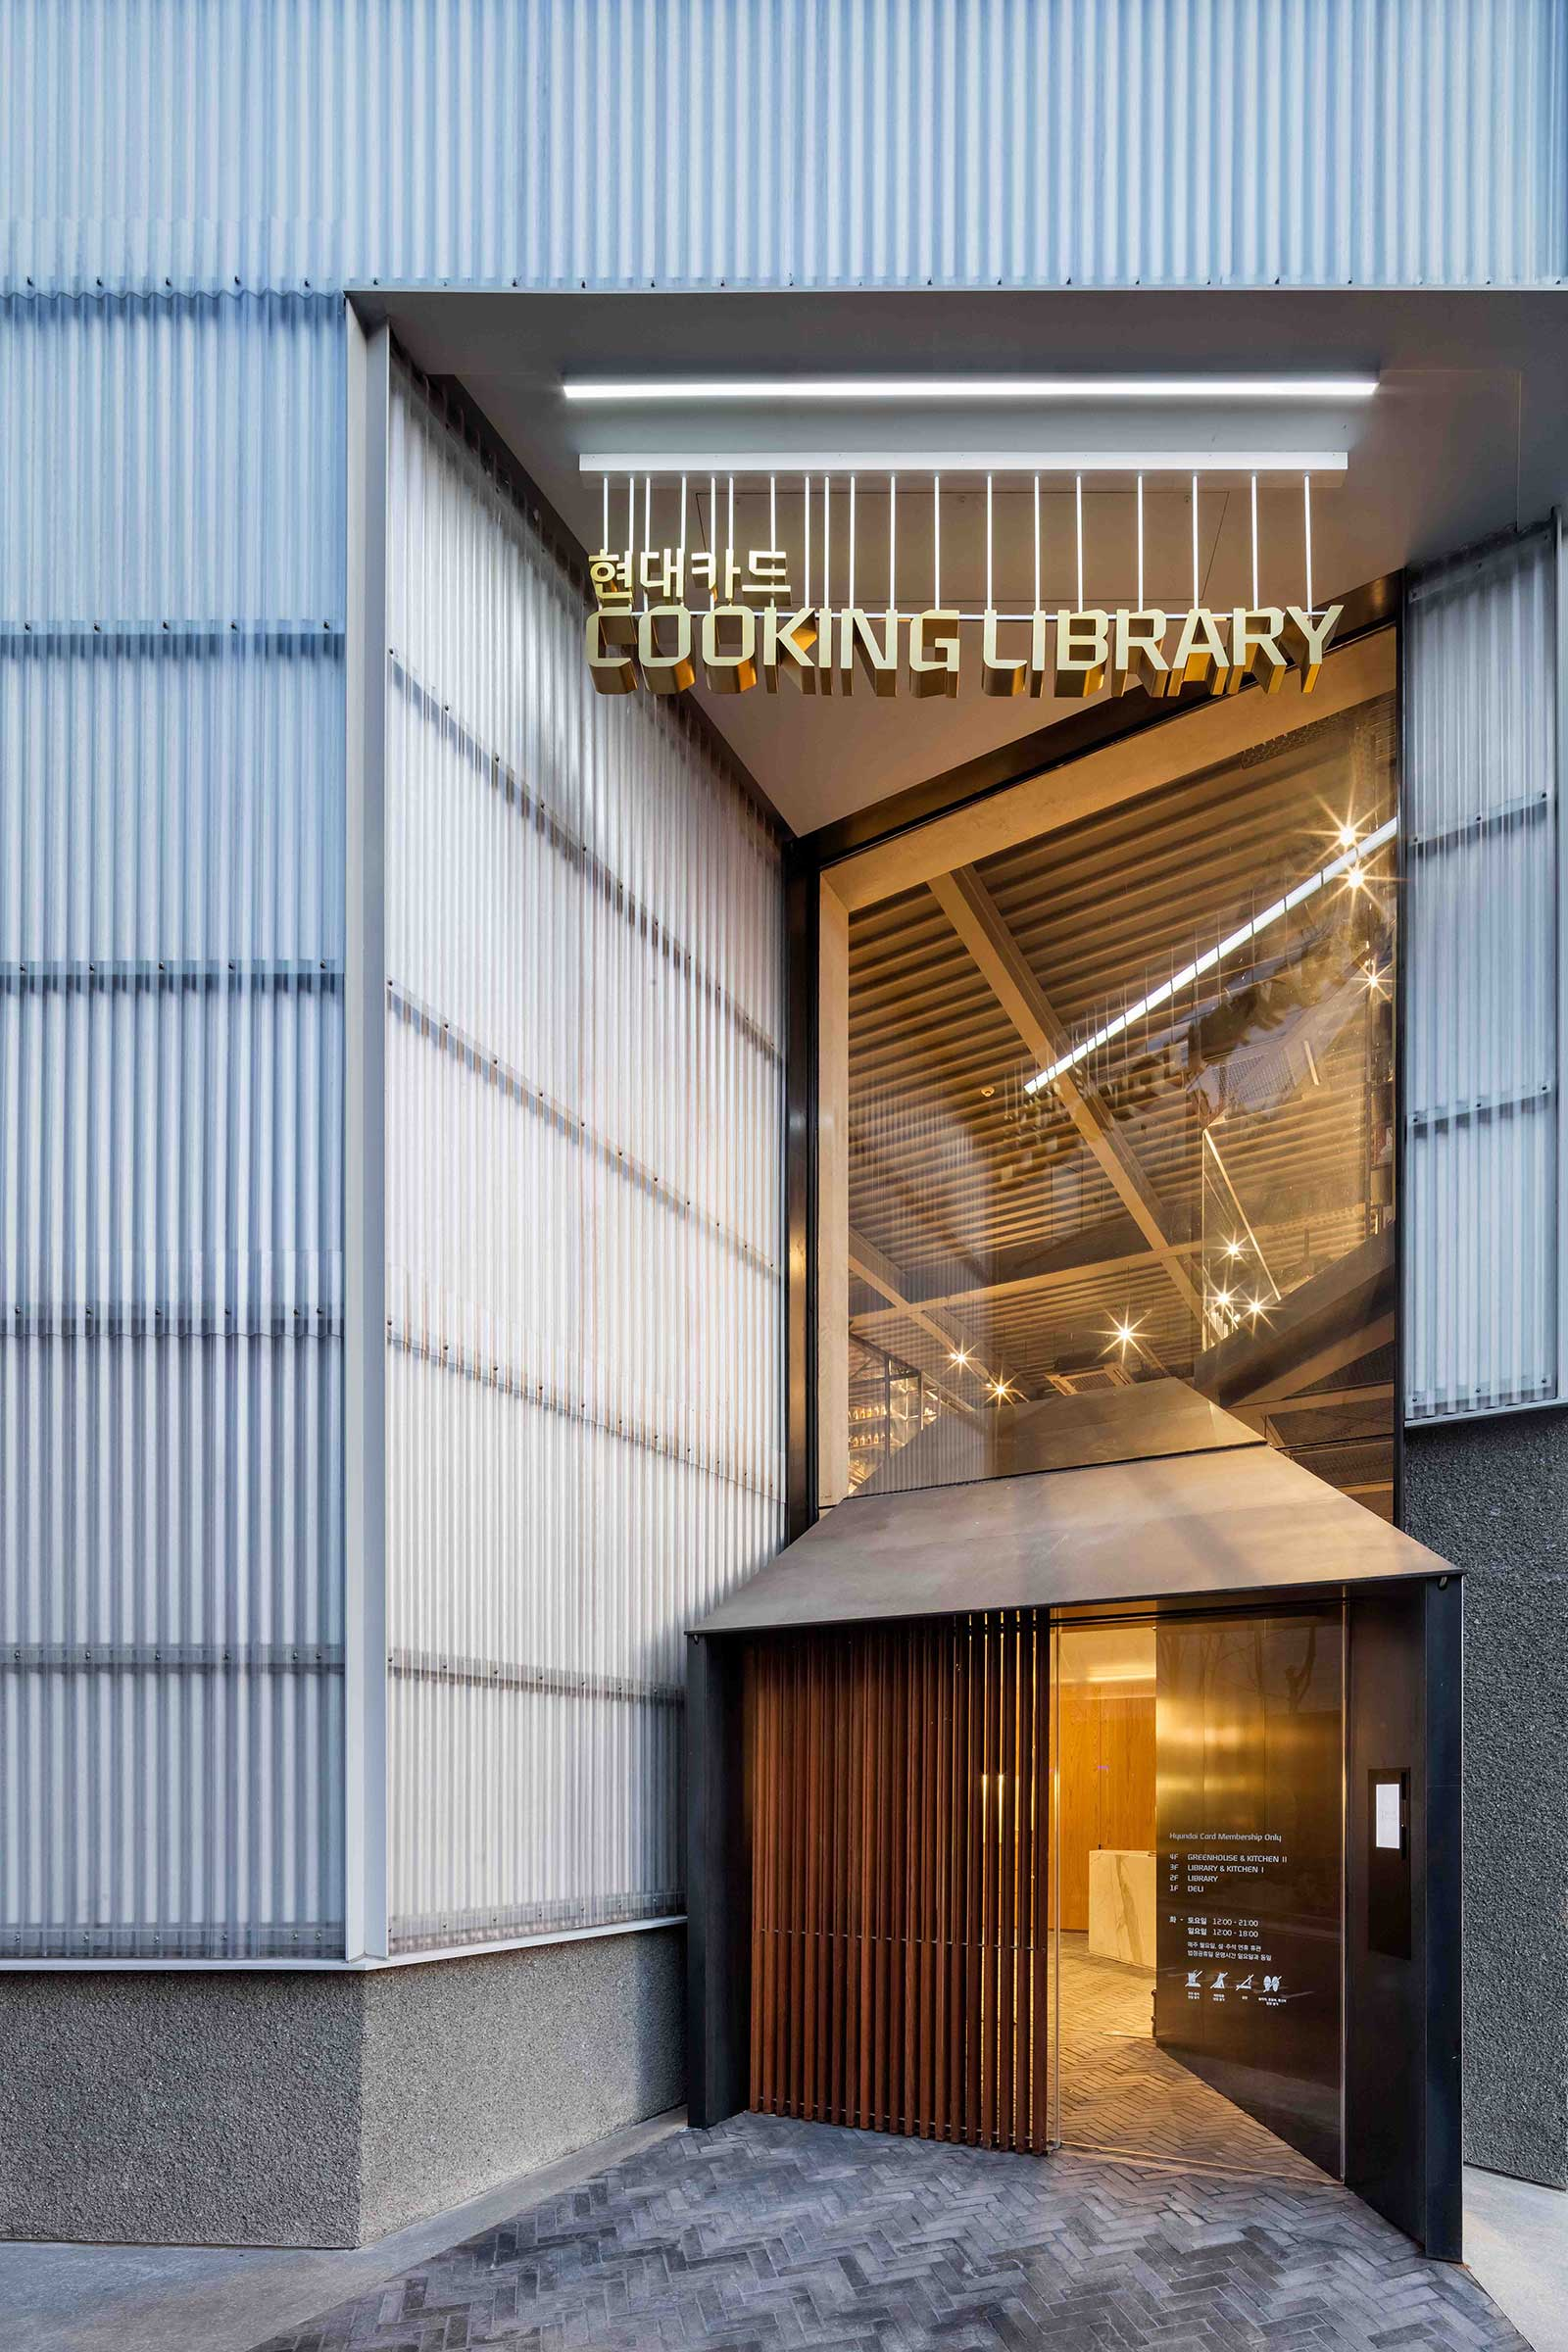 Cooking-Library-1.jpg